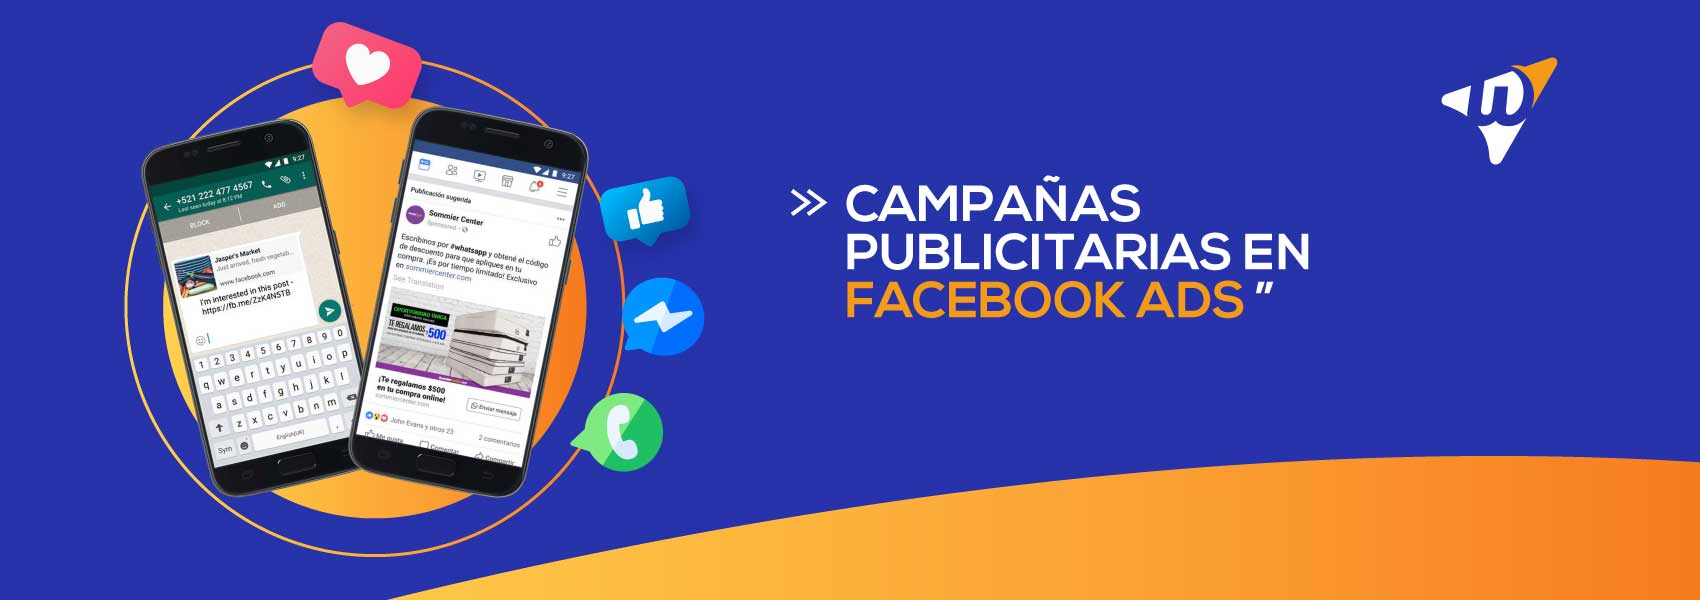 agencia de marketing digital en redes sociales